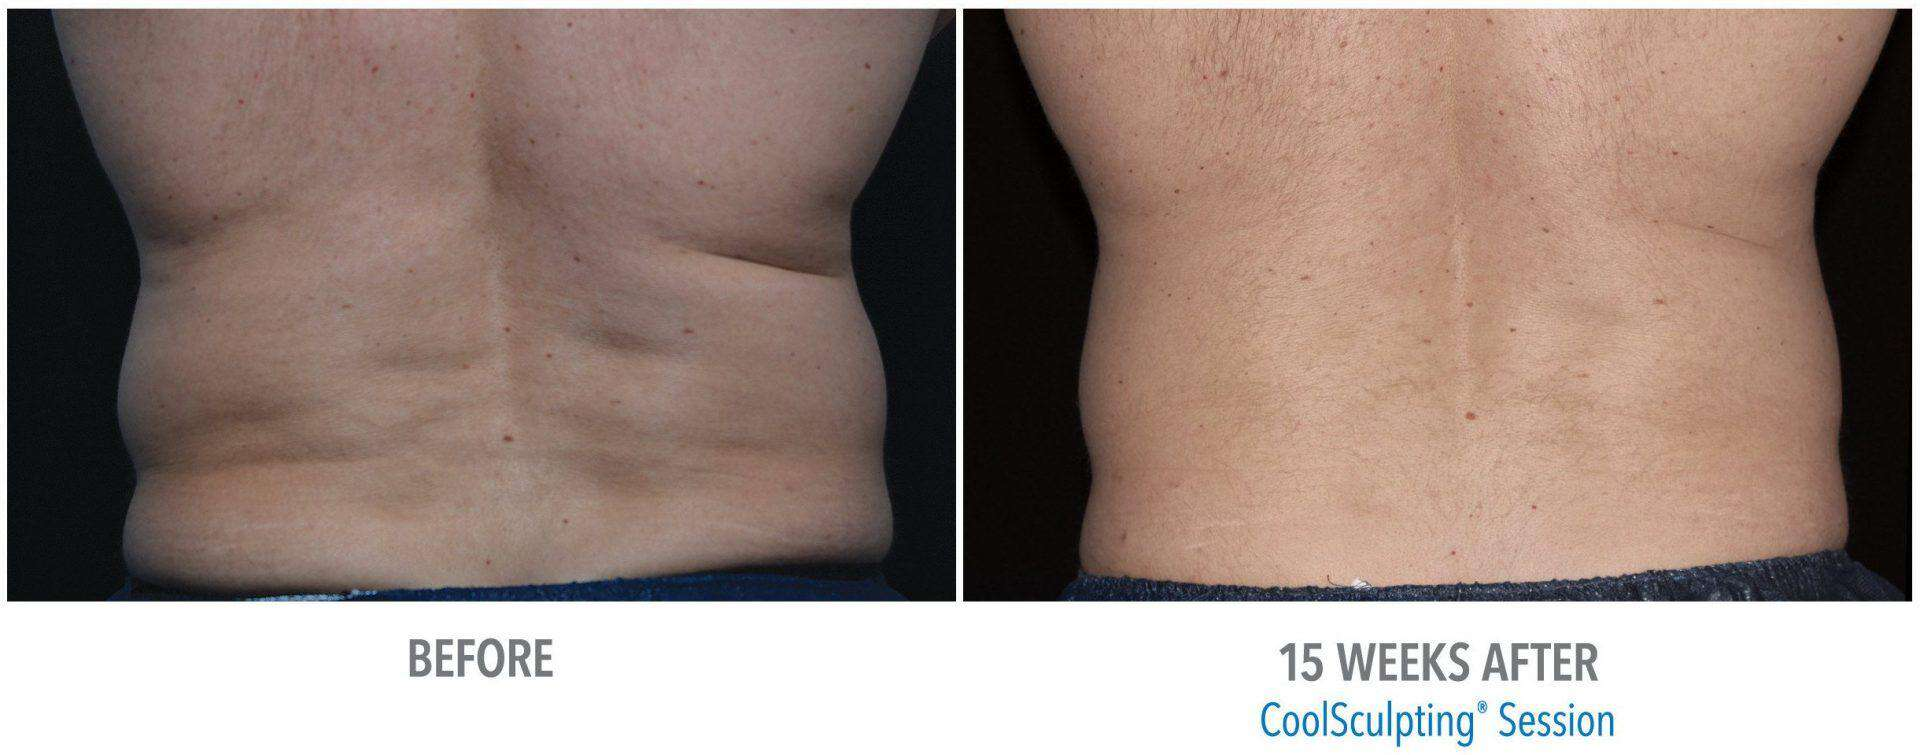 3 Things You Need To Know About Coolsculpting Side Effects